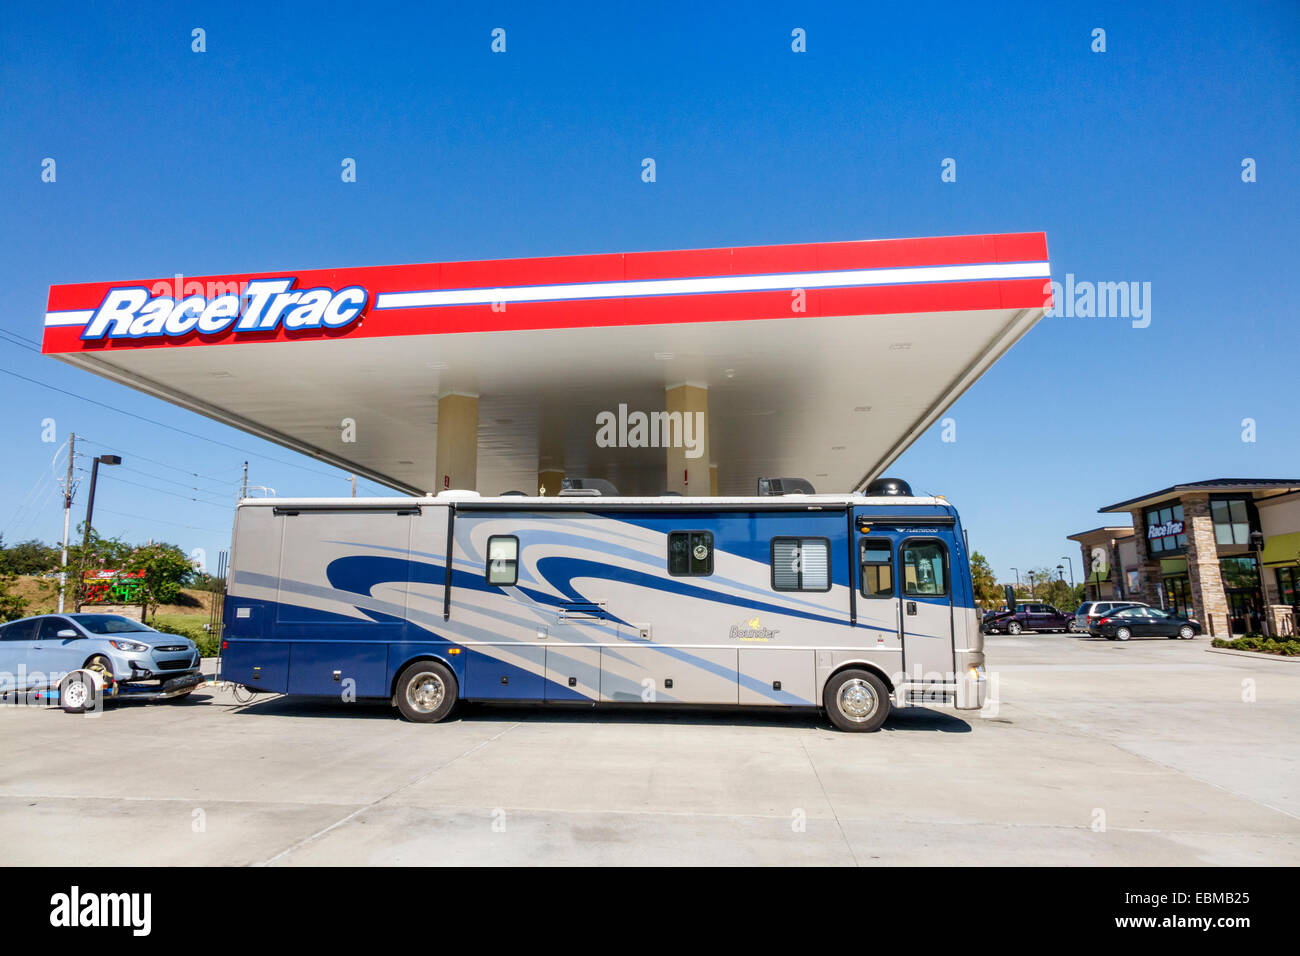 Clermont Florida Race Trac RaceTrac gas station petrol RV